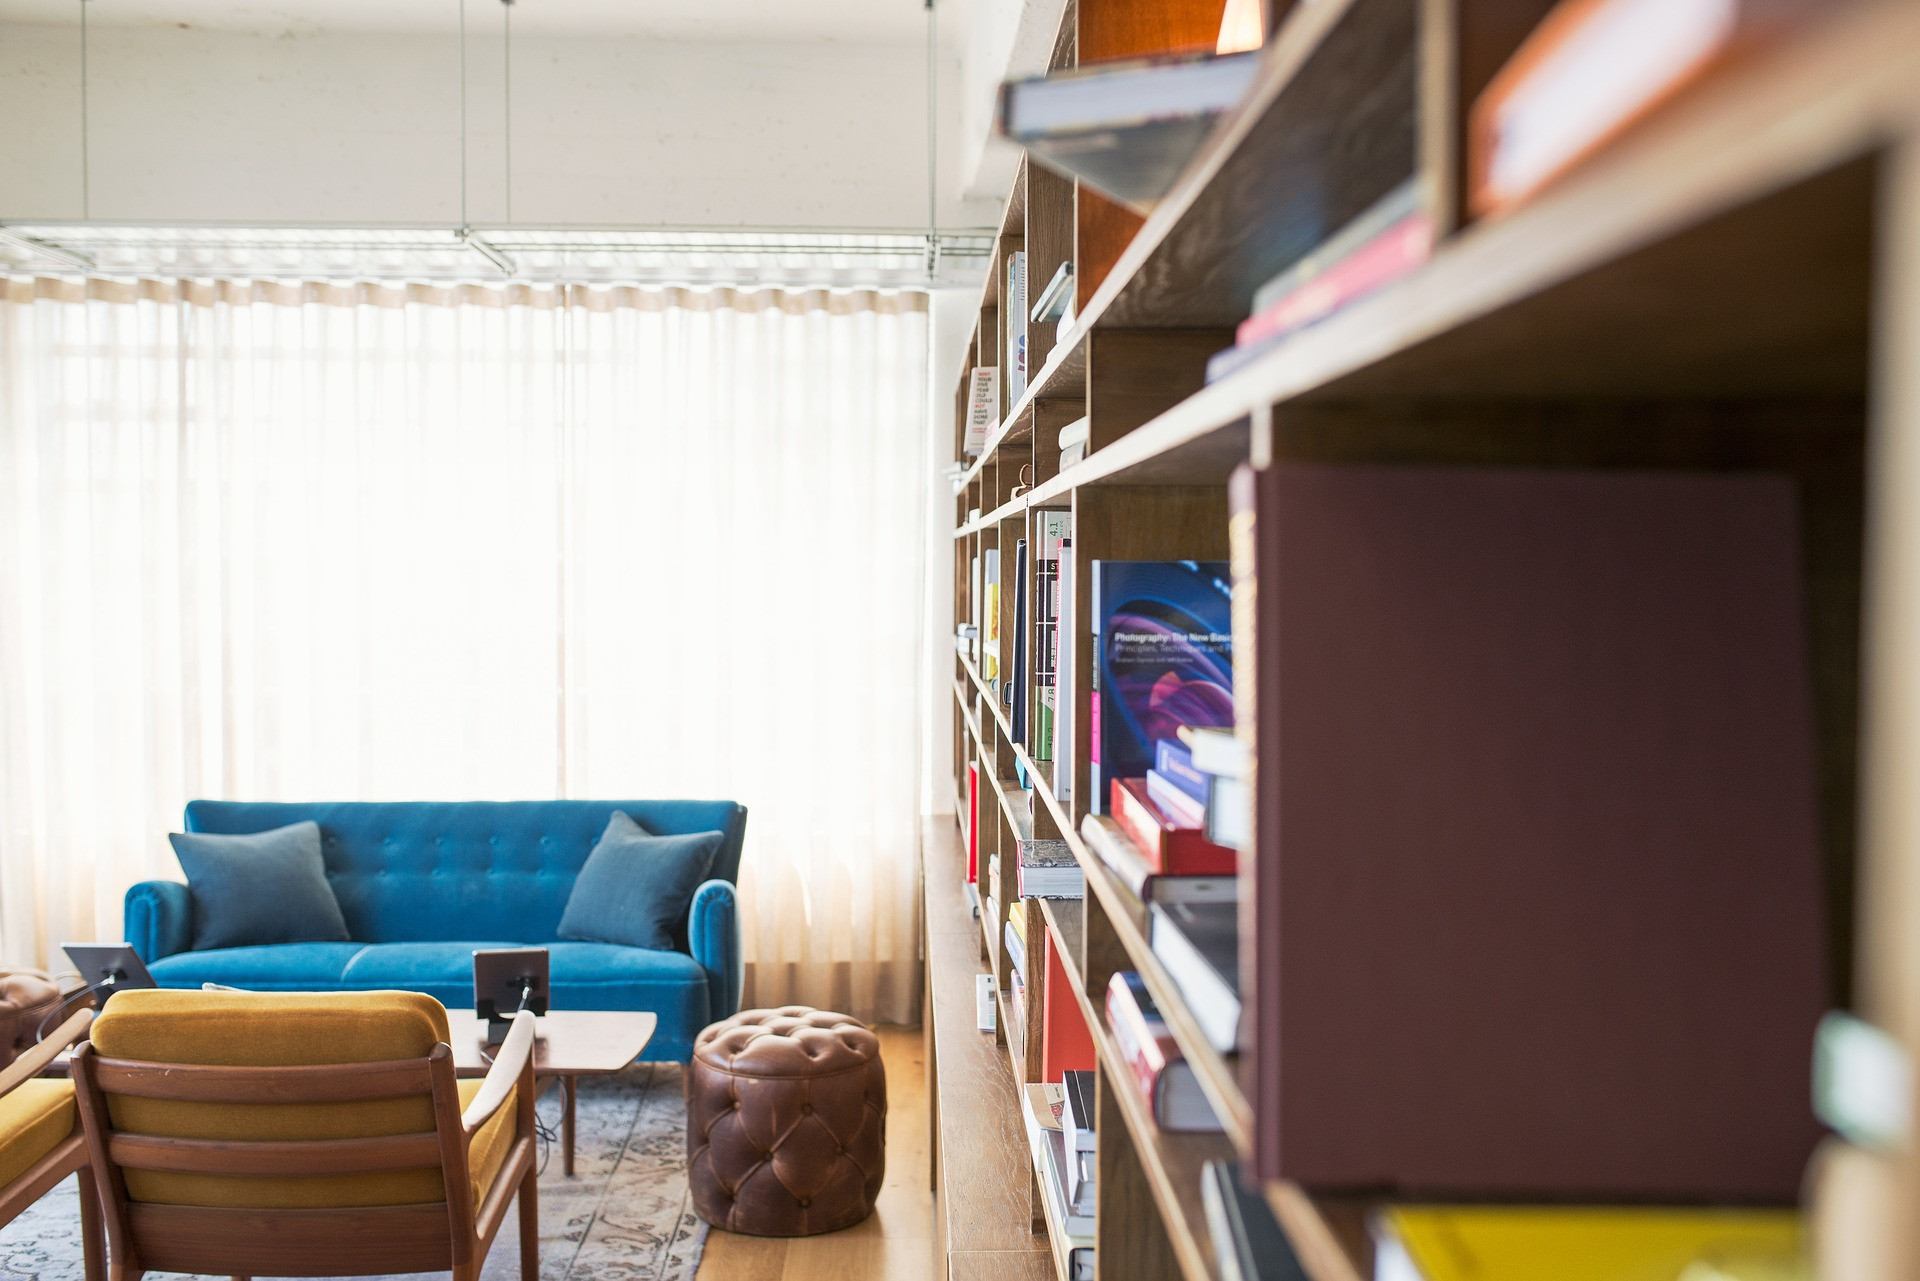 Inventory: How Crucial is it for Landlords?